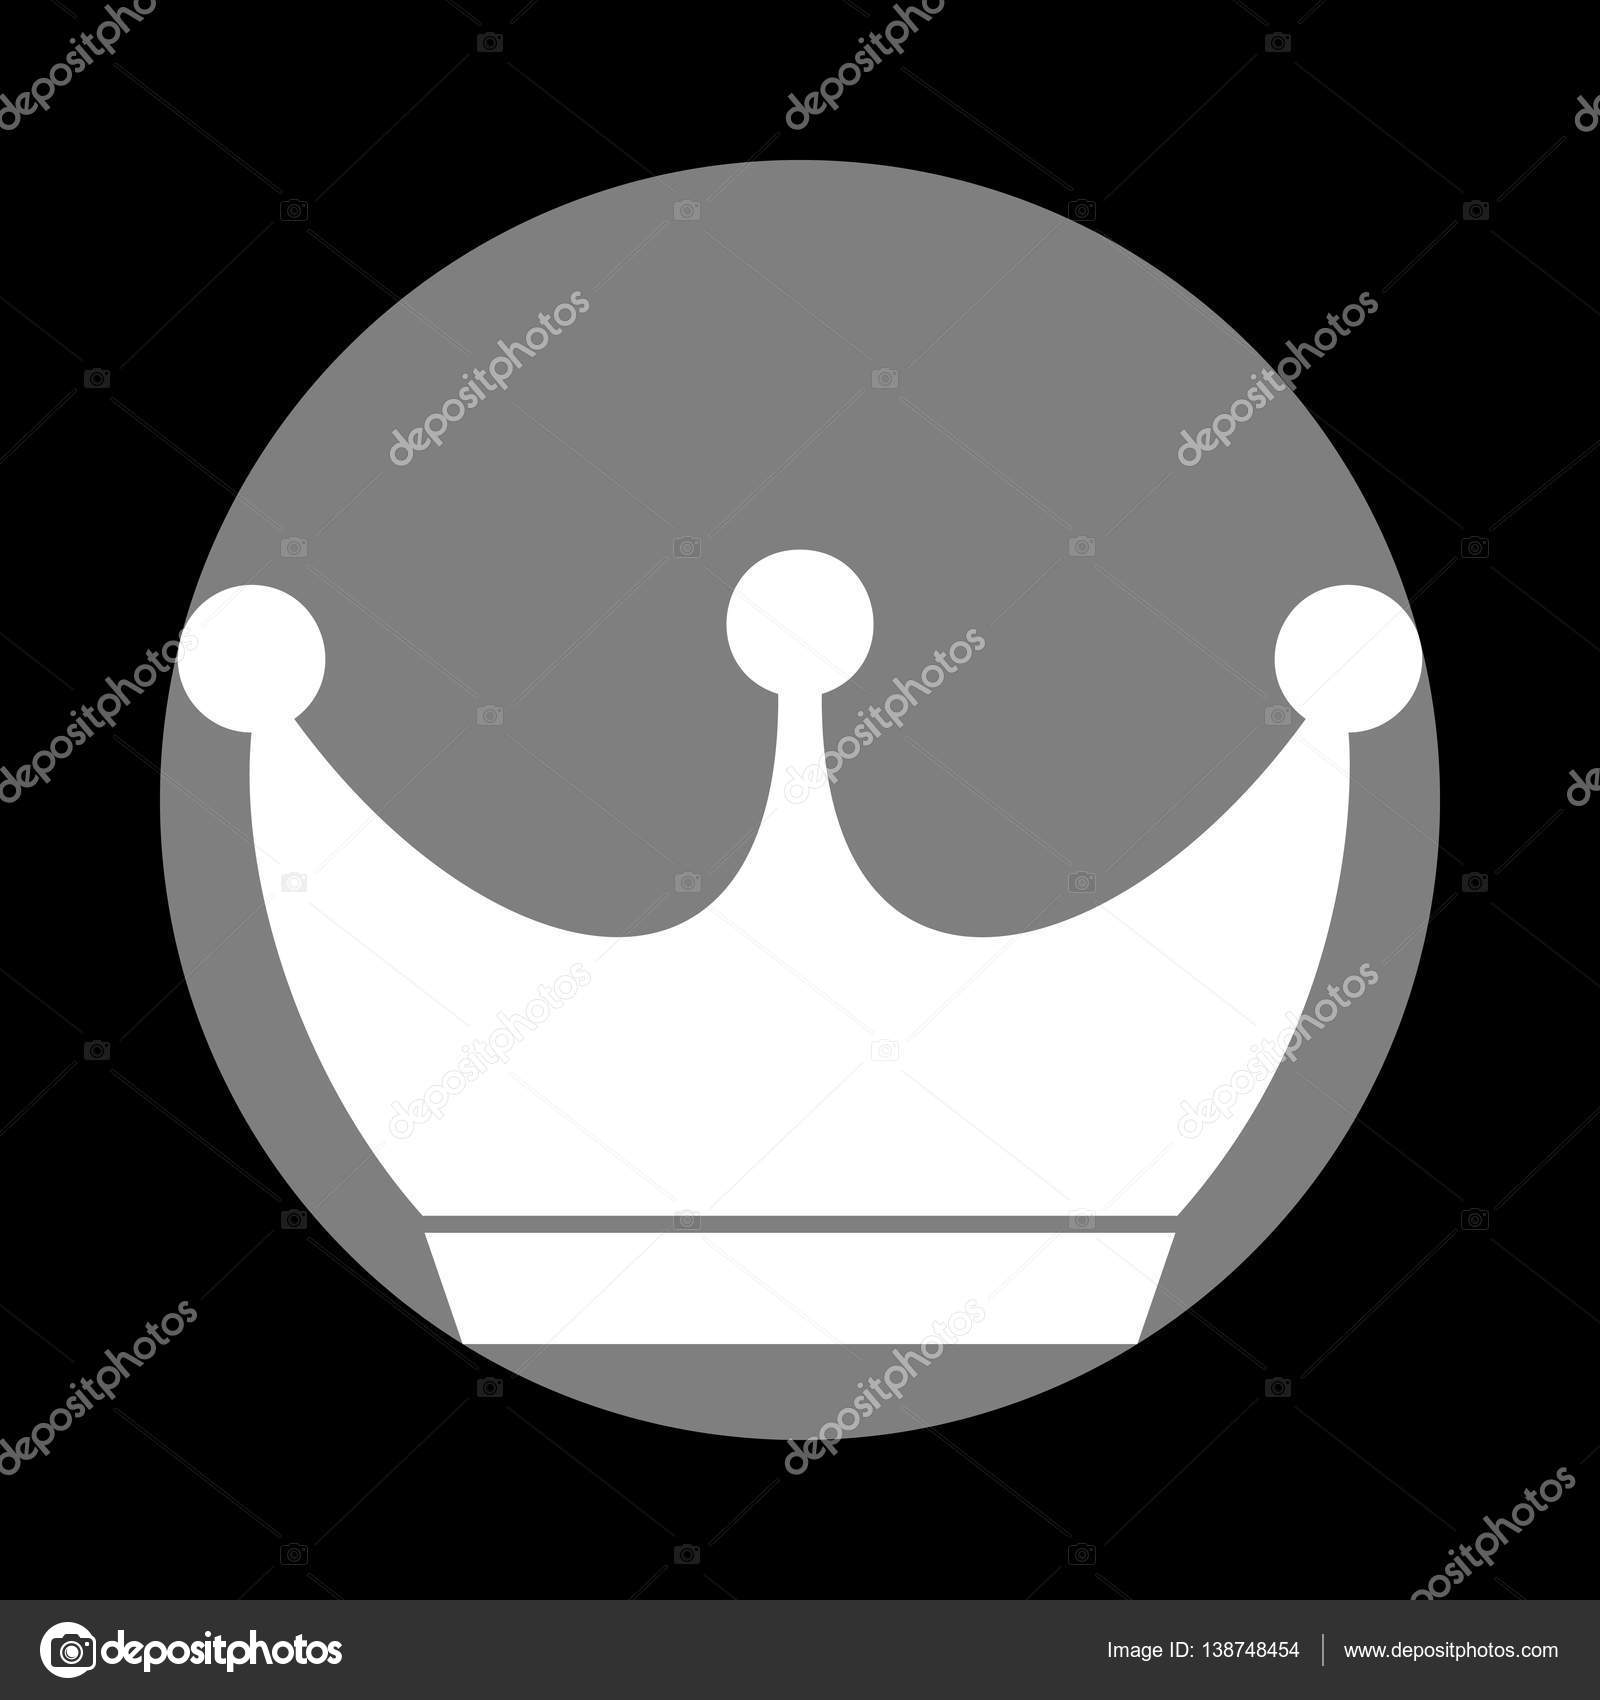 King Crown Sign White Icon In Gray Circle At Black Background